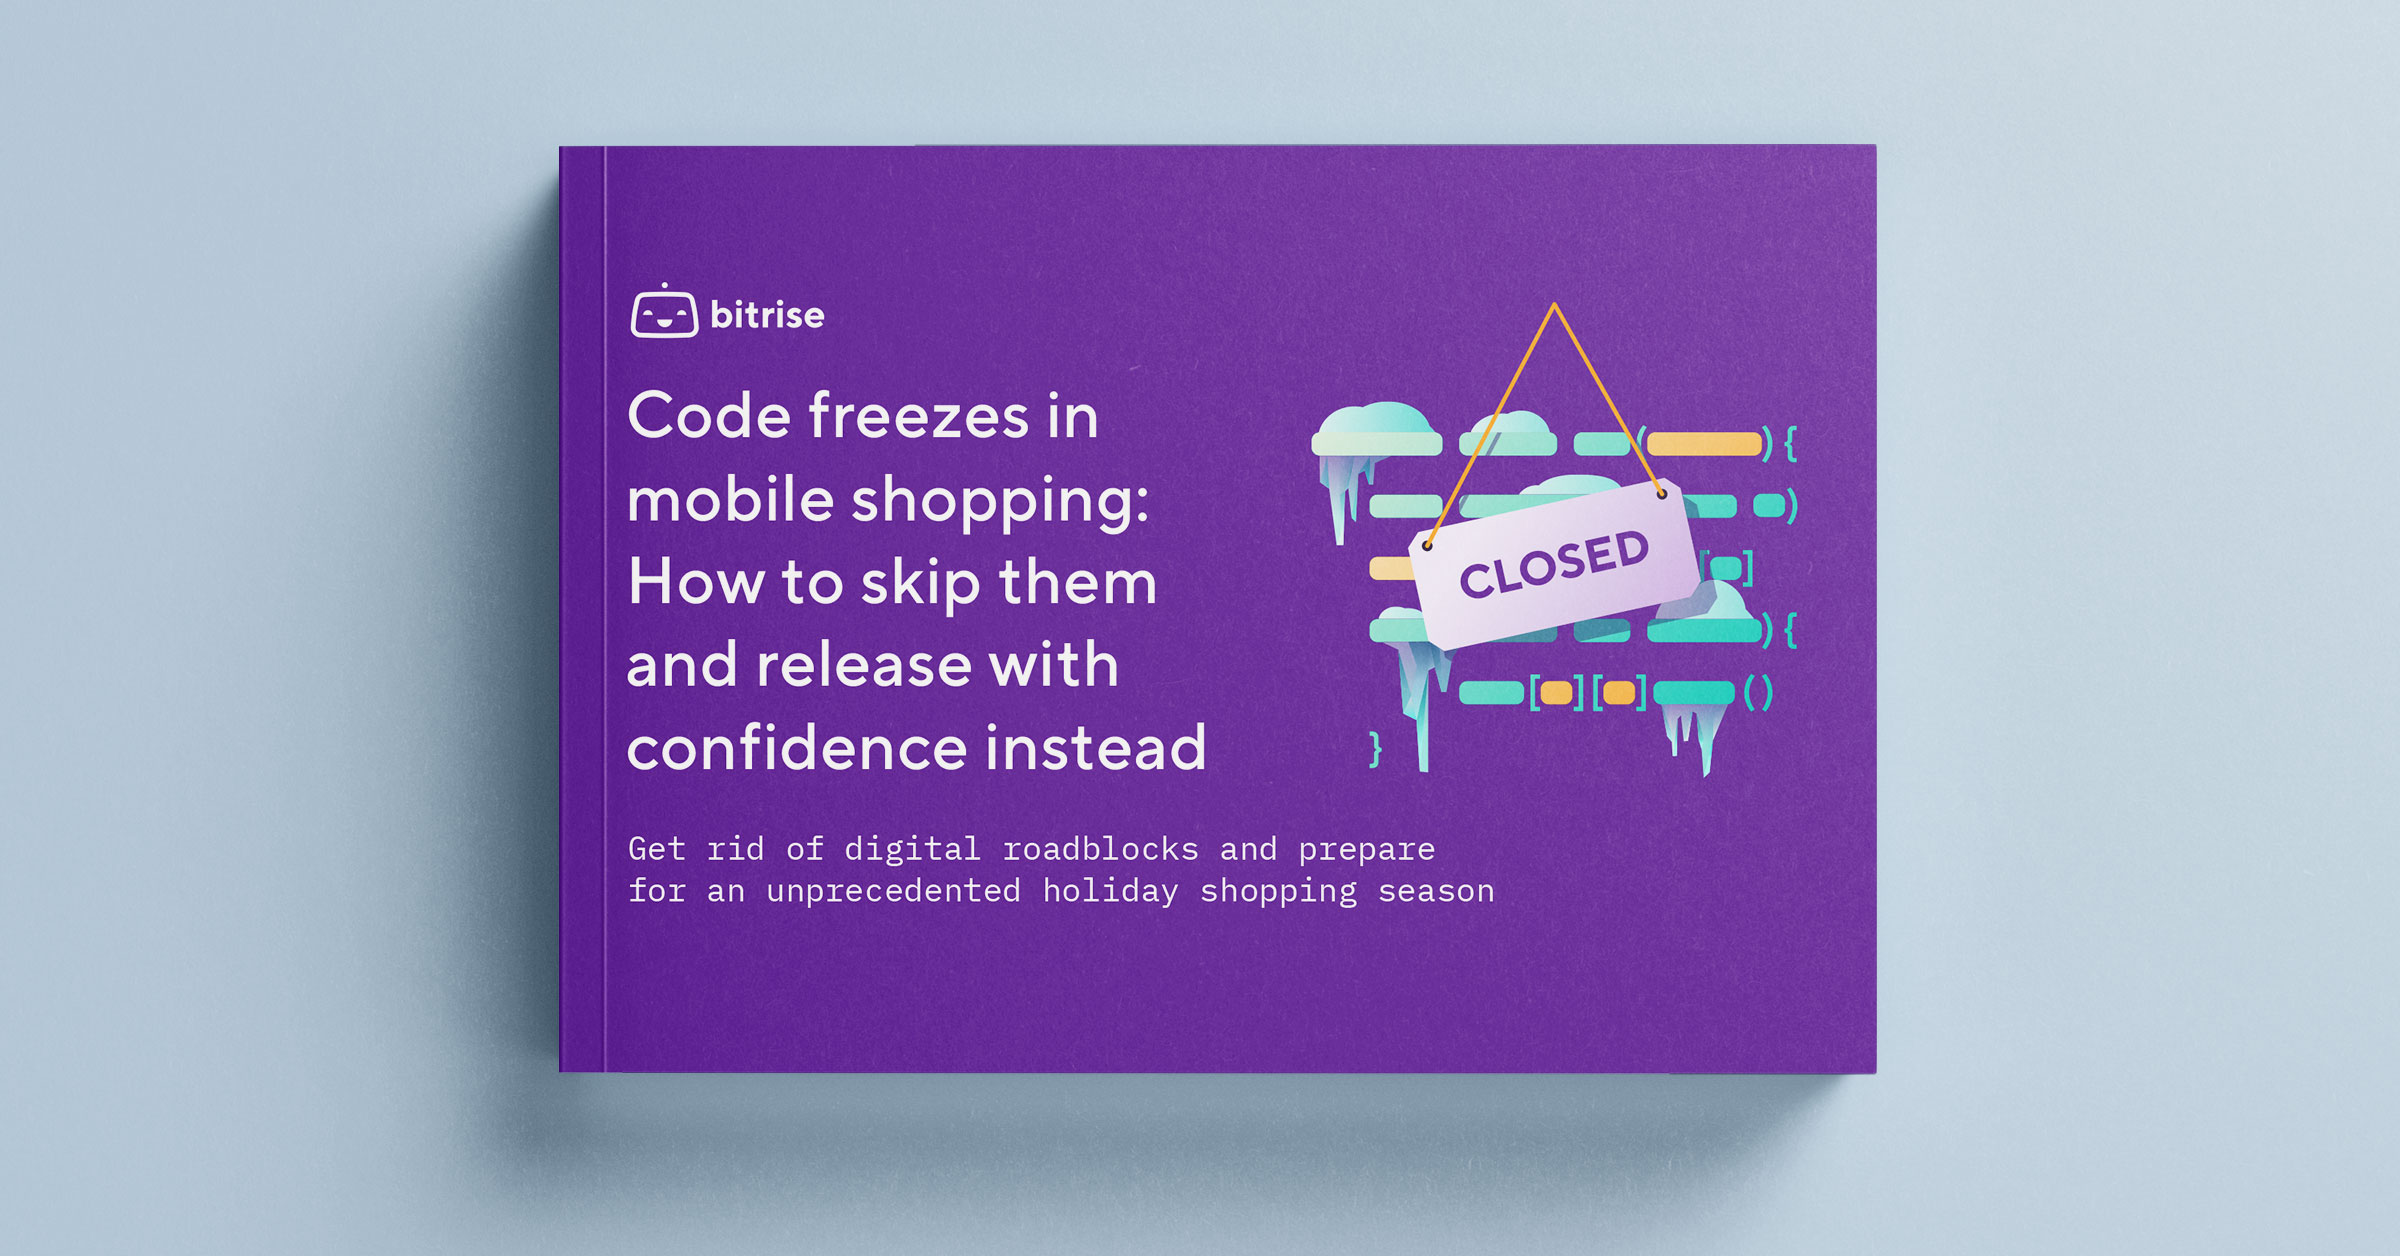 Code freezes in mobile shopping